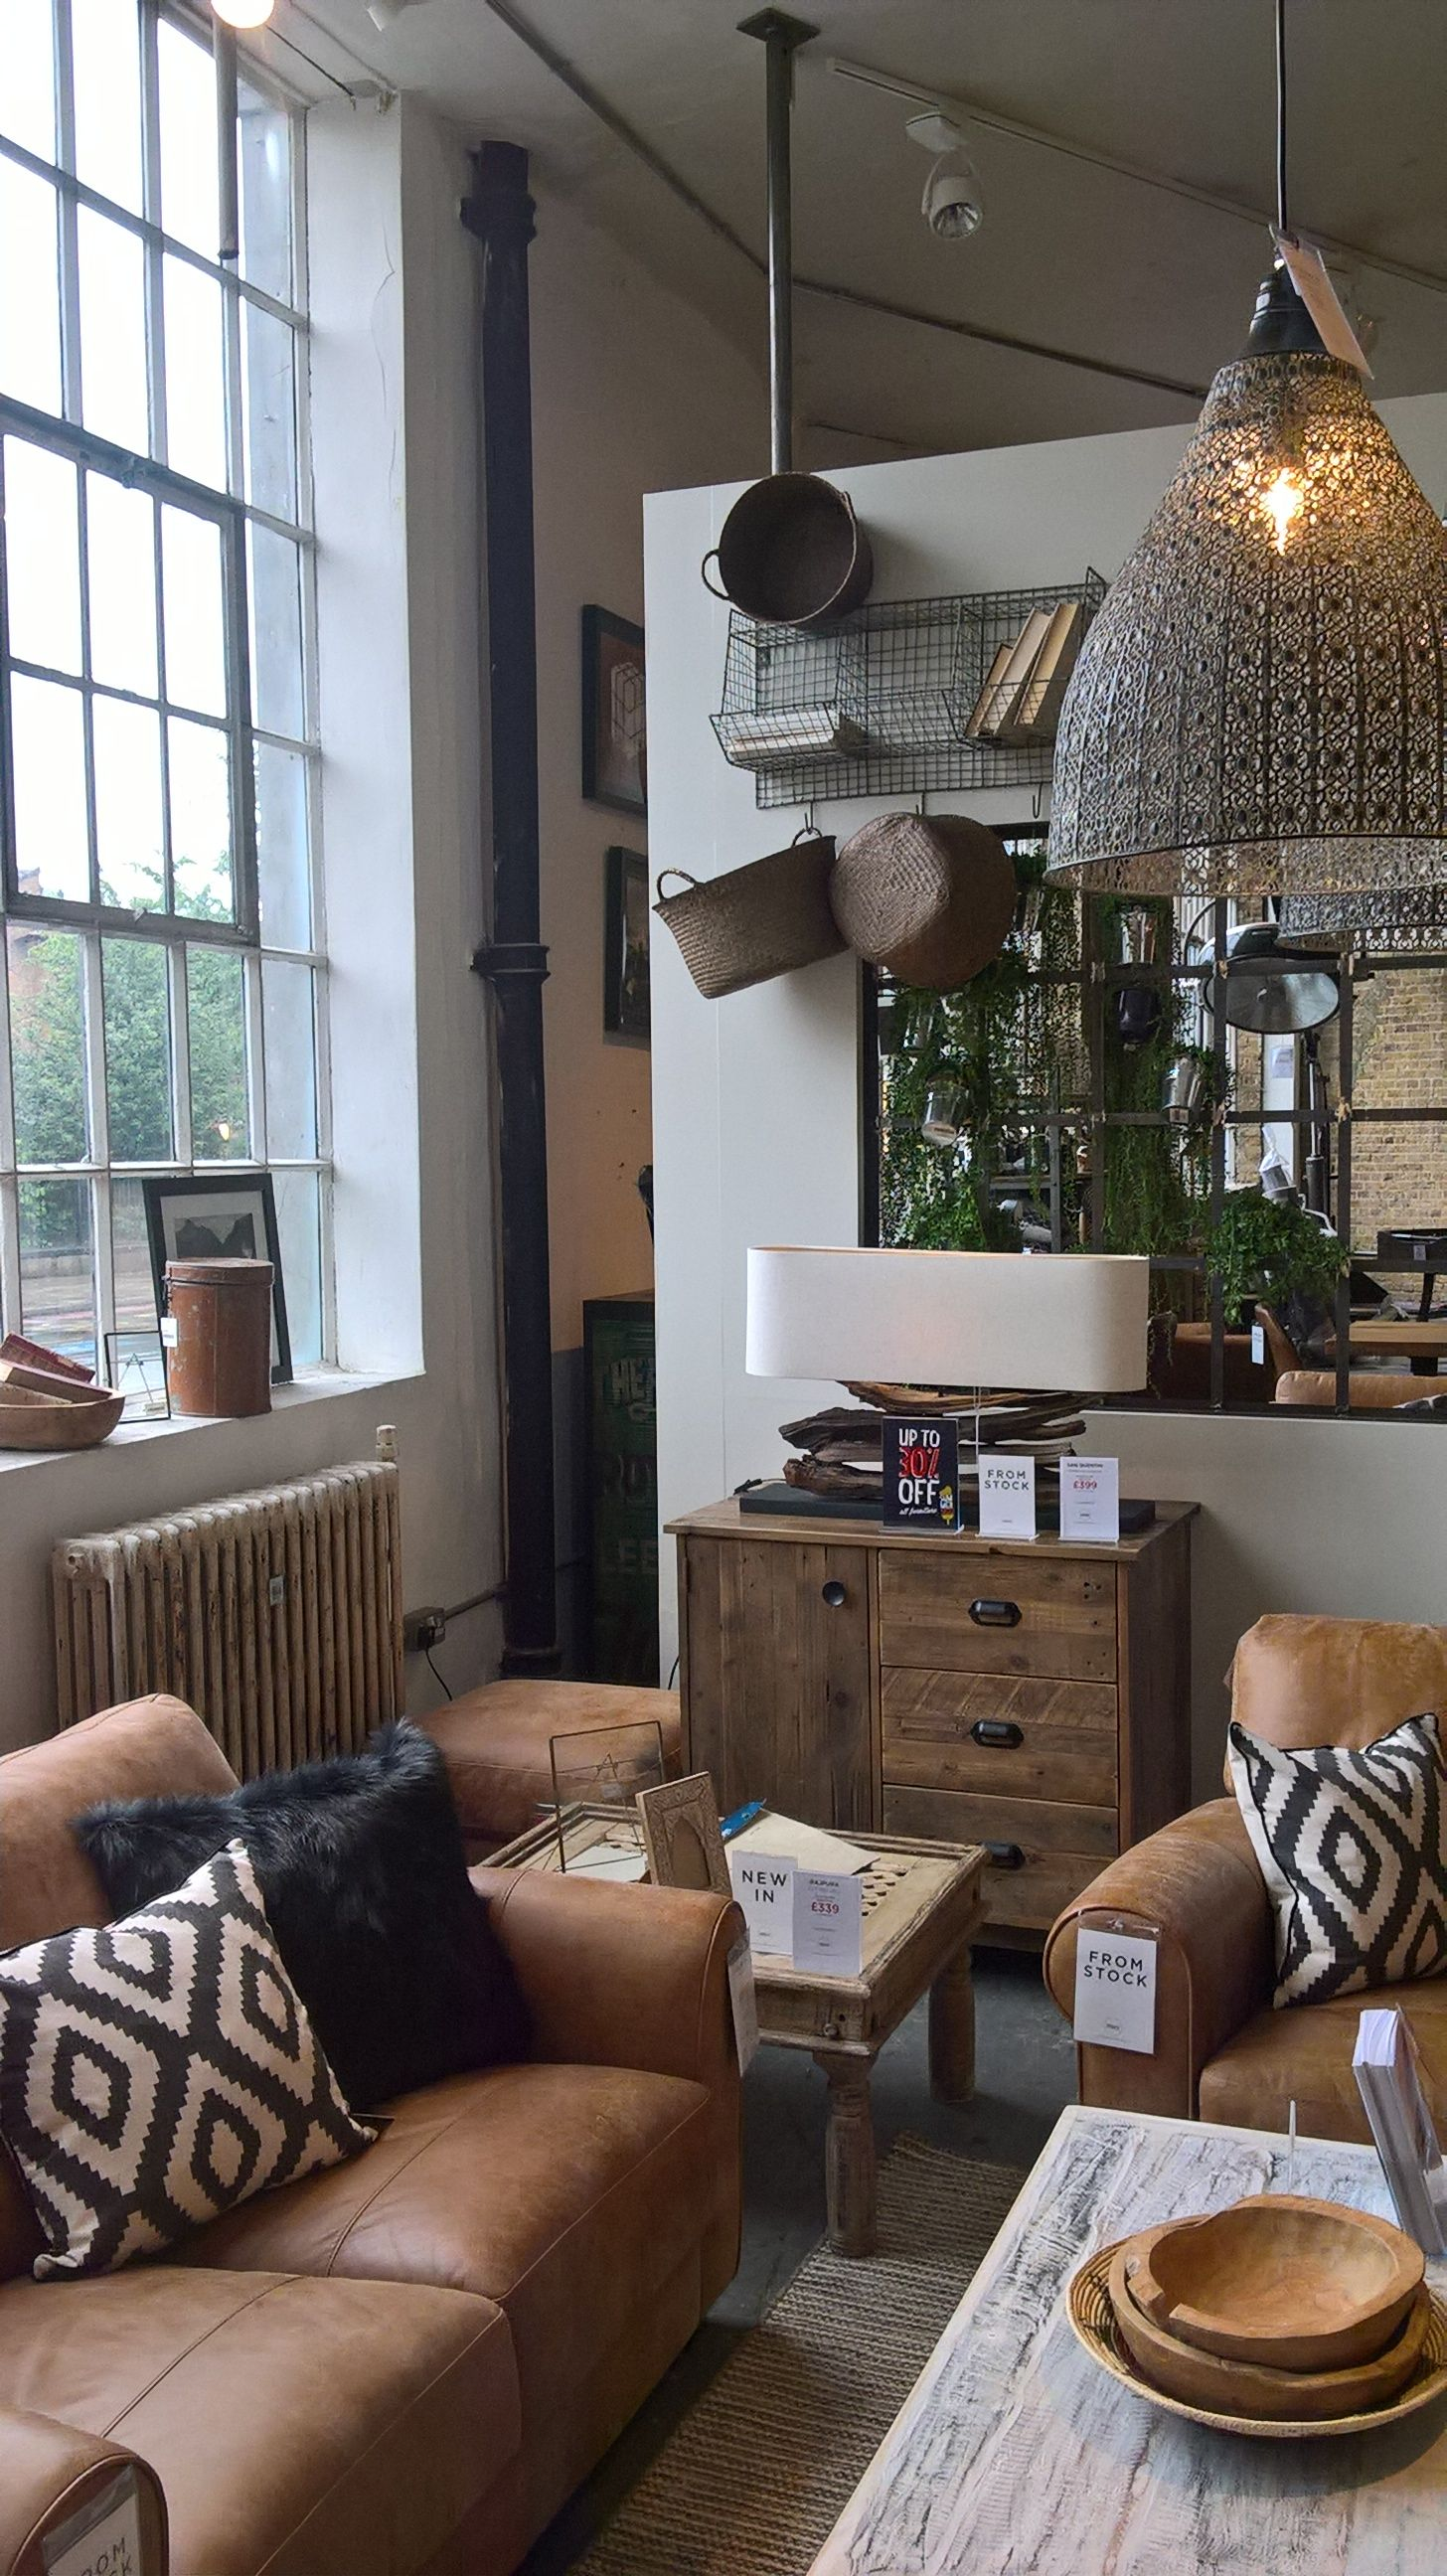 a sneak peak at some new furniture displays in our london battersea